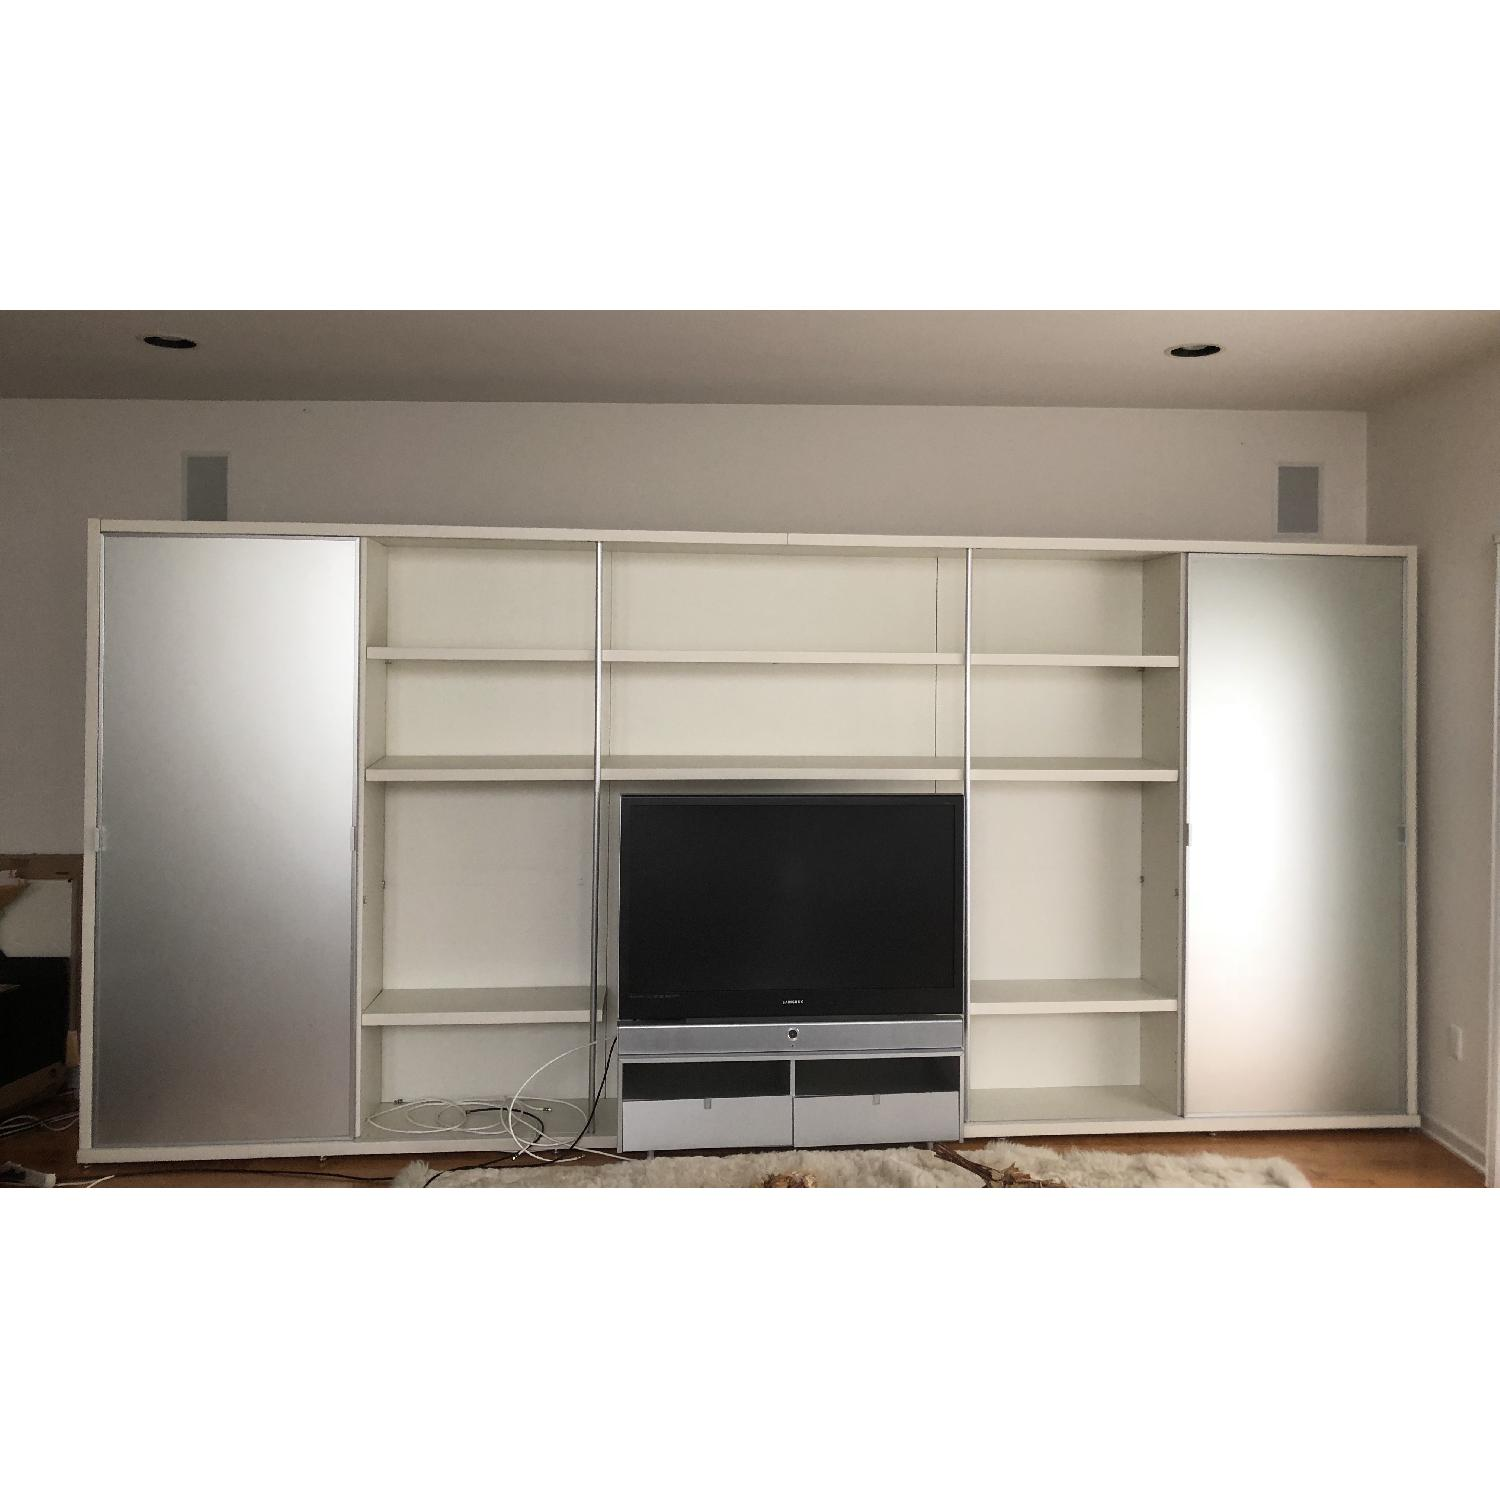 DDC NYC Modern Contemporary Frosted Glass Media Wall Unit - image-1